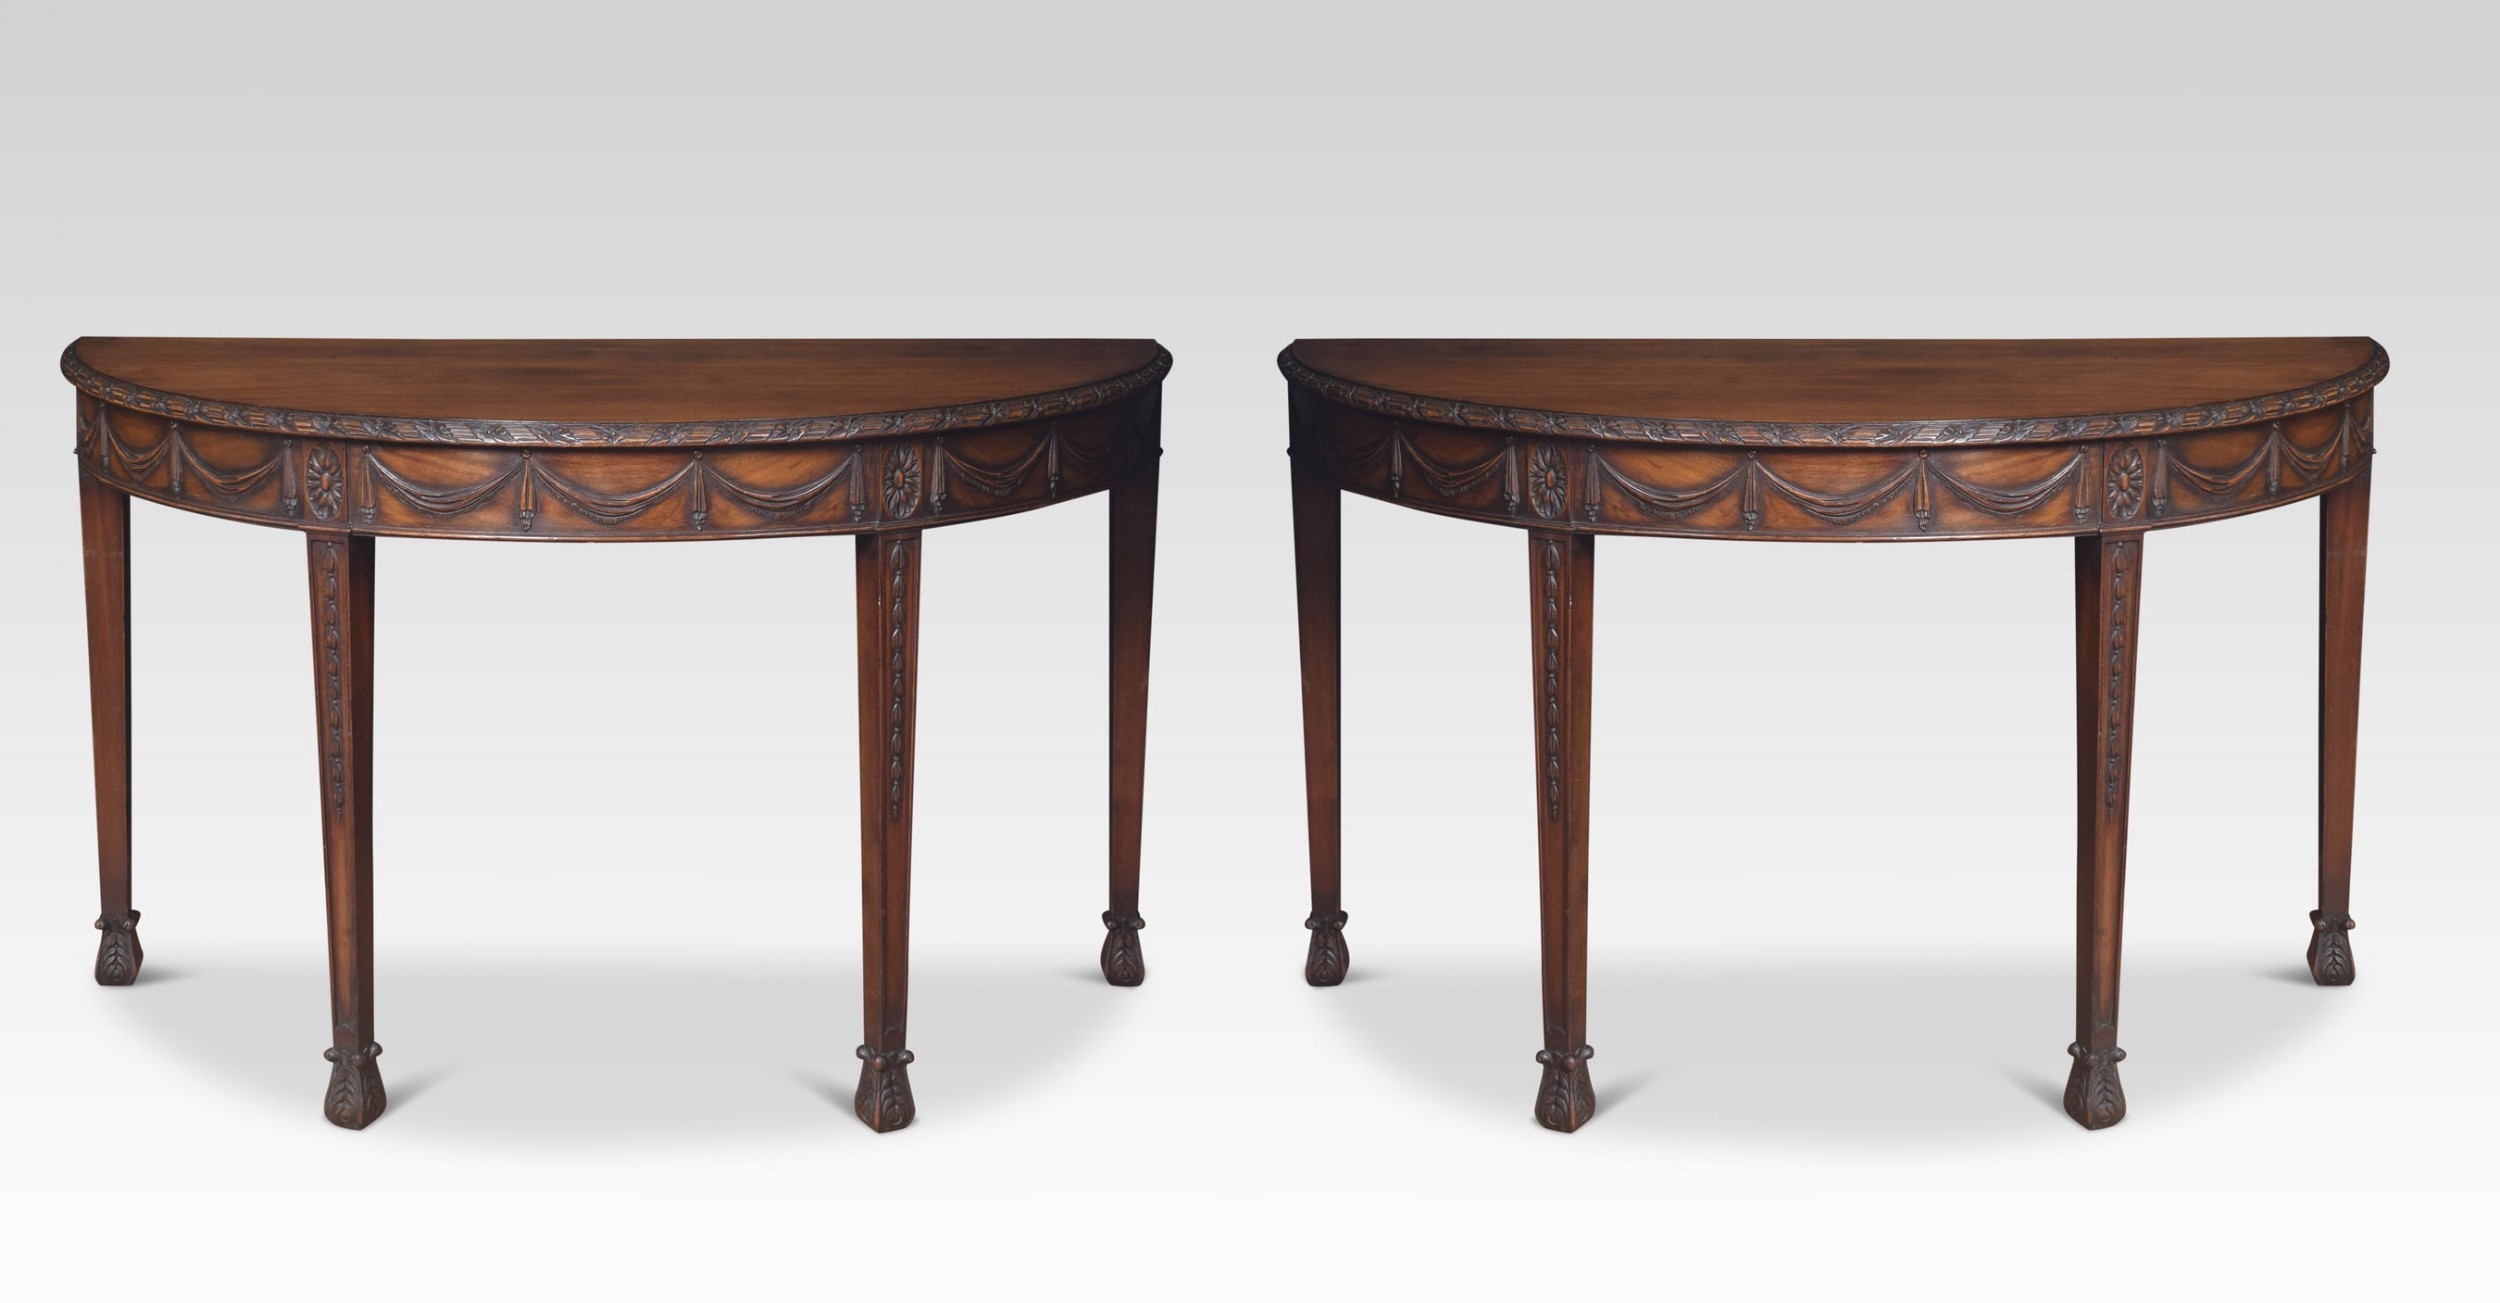 pair of adam revival mahogany hall tables